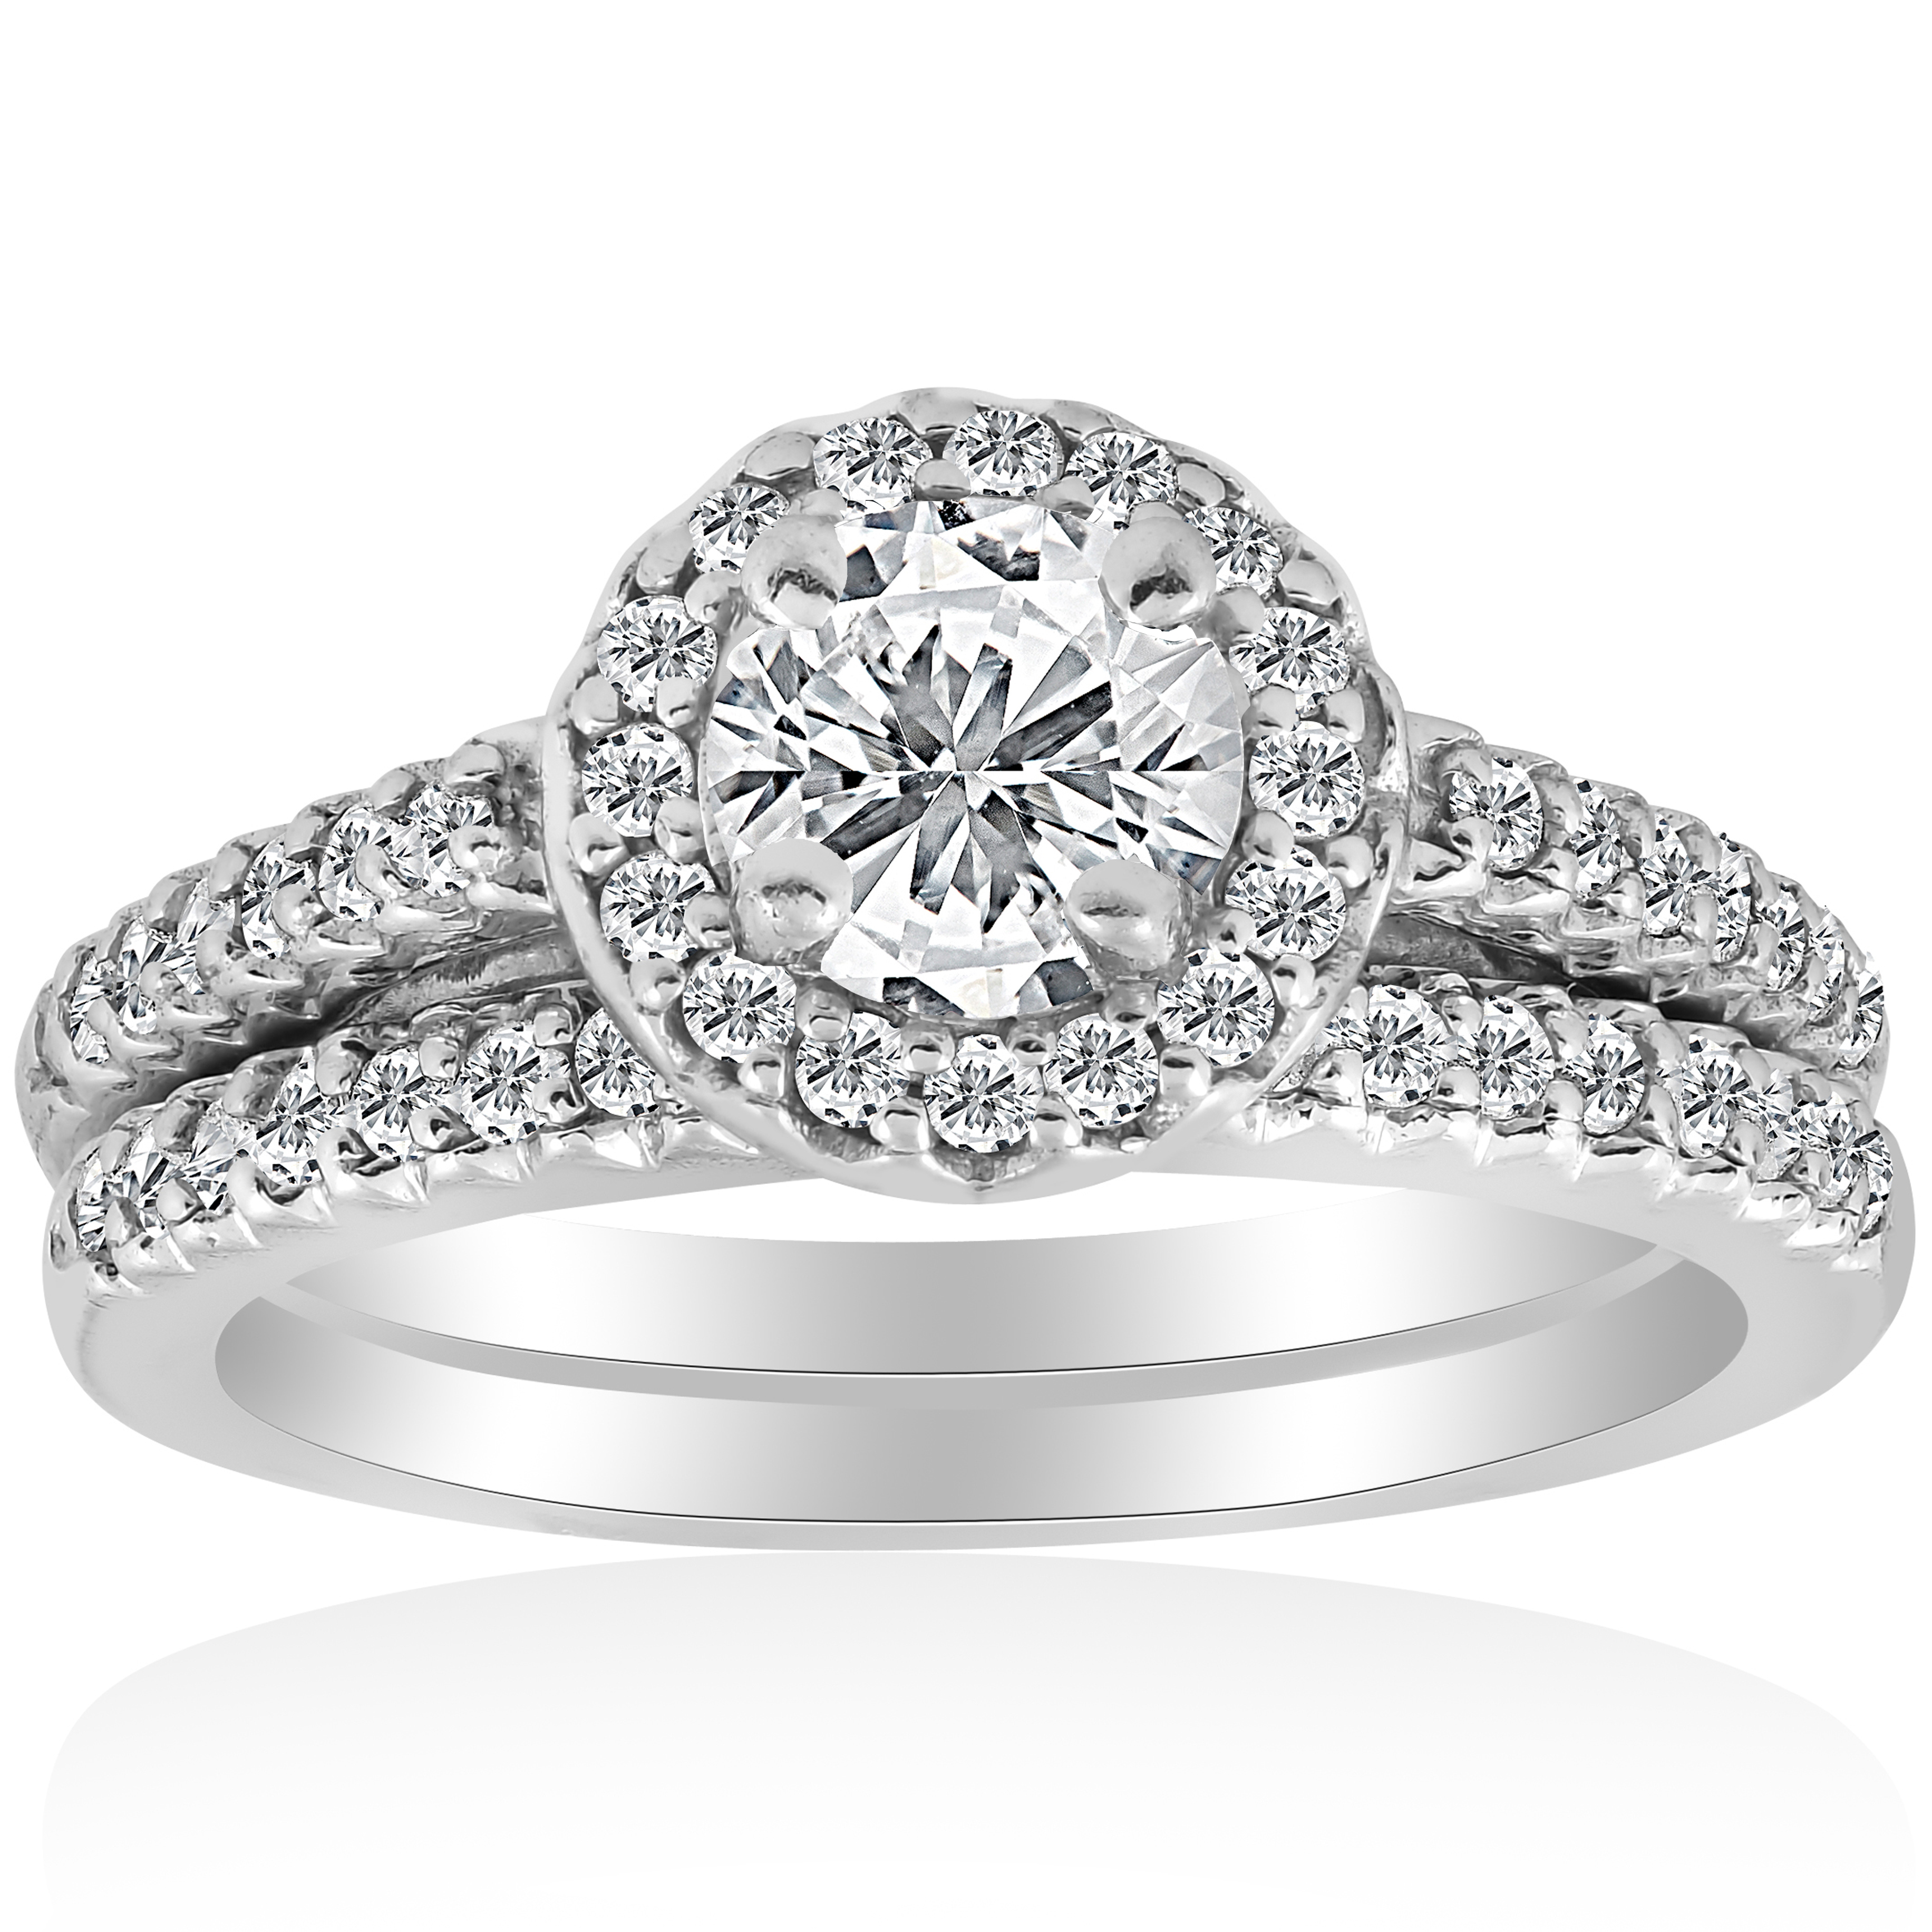 3 4ct Halo Diamond Engagement Ring Matching Wedding Band White Gold Solitaire by Pompeii3